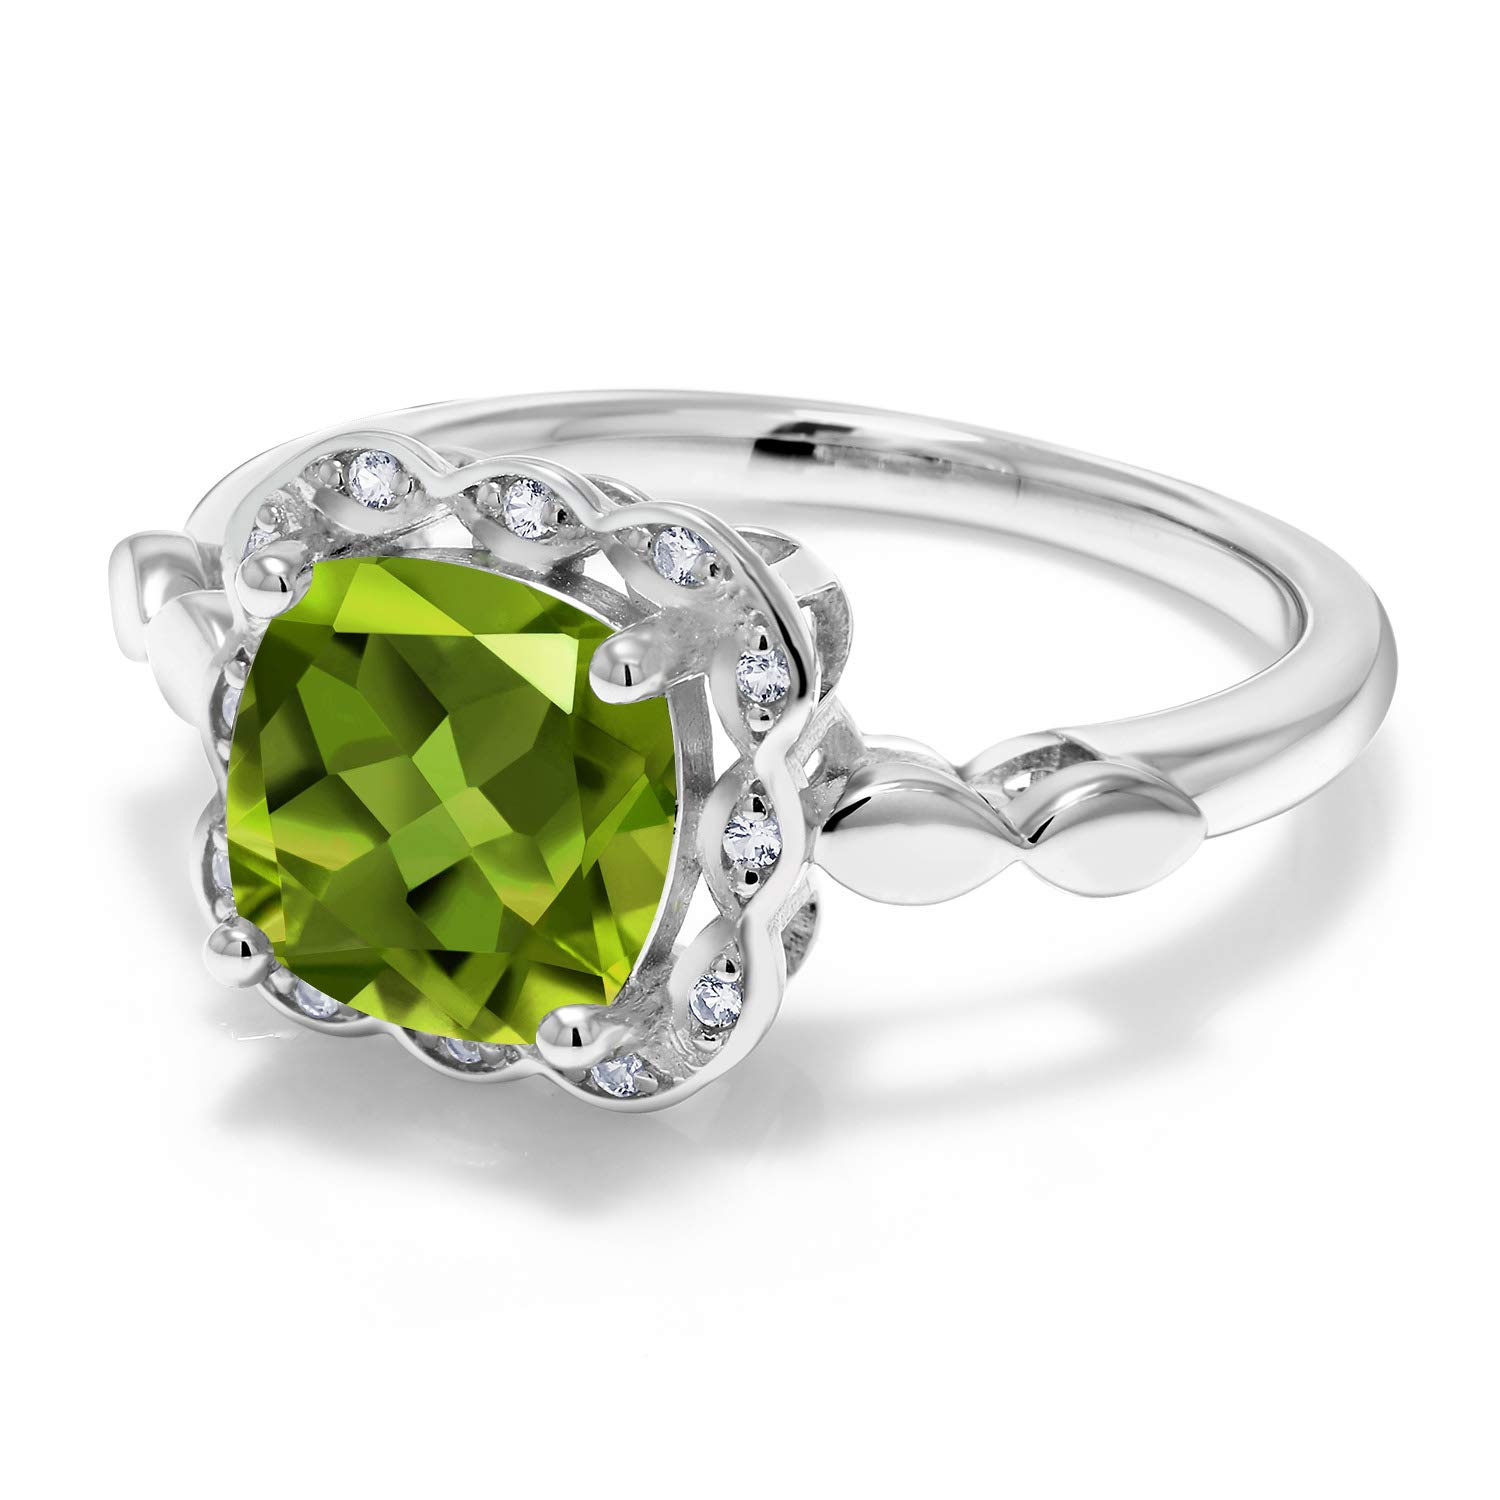 Gem Stone King 925 Sterling Silver Green Peridot and White Created Sapphire Women s Ring 2.55 Ct Cushion Cut Available in size 5, 6, 7, 8, 9